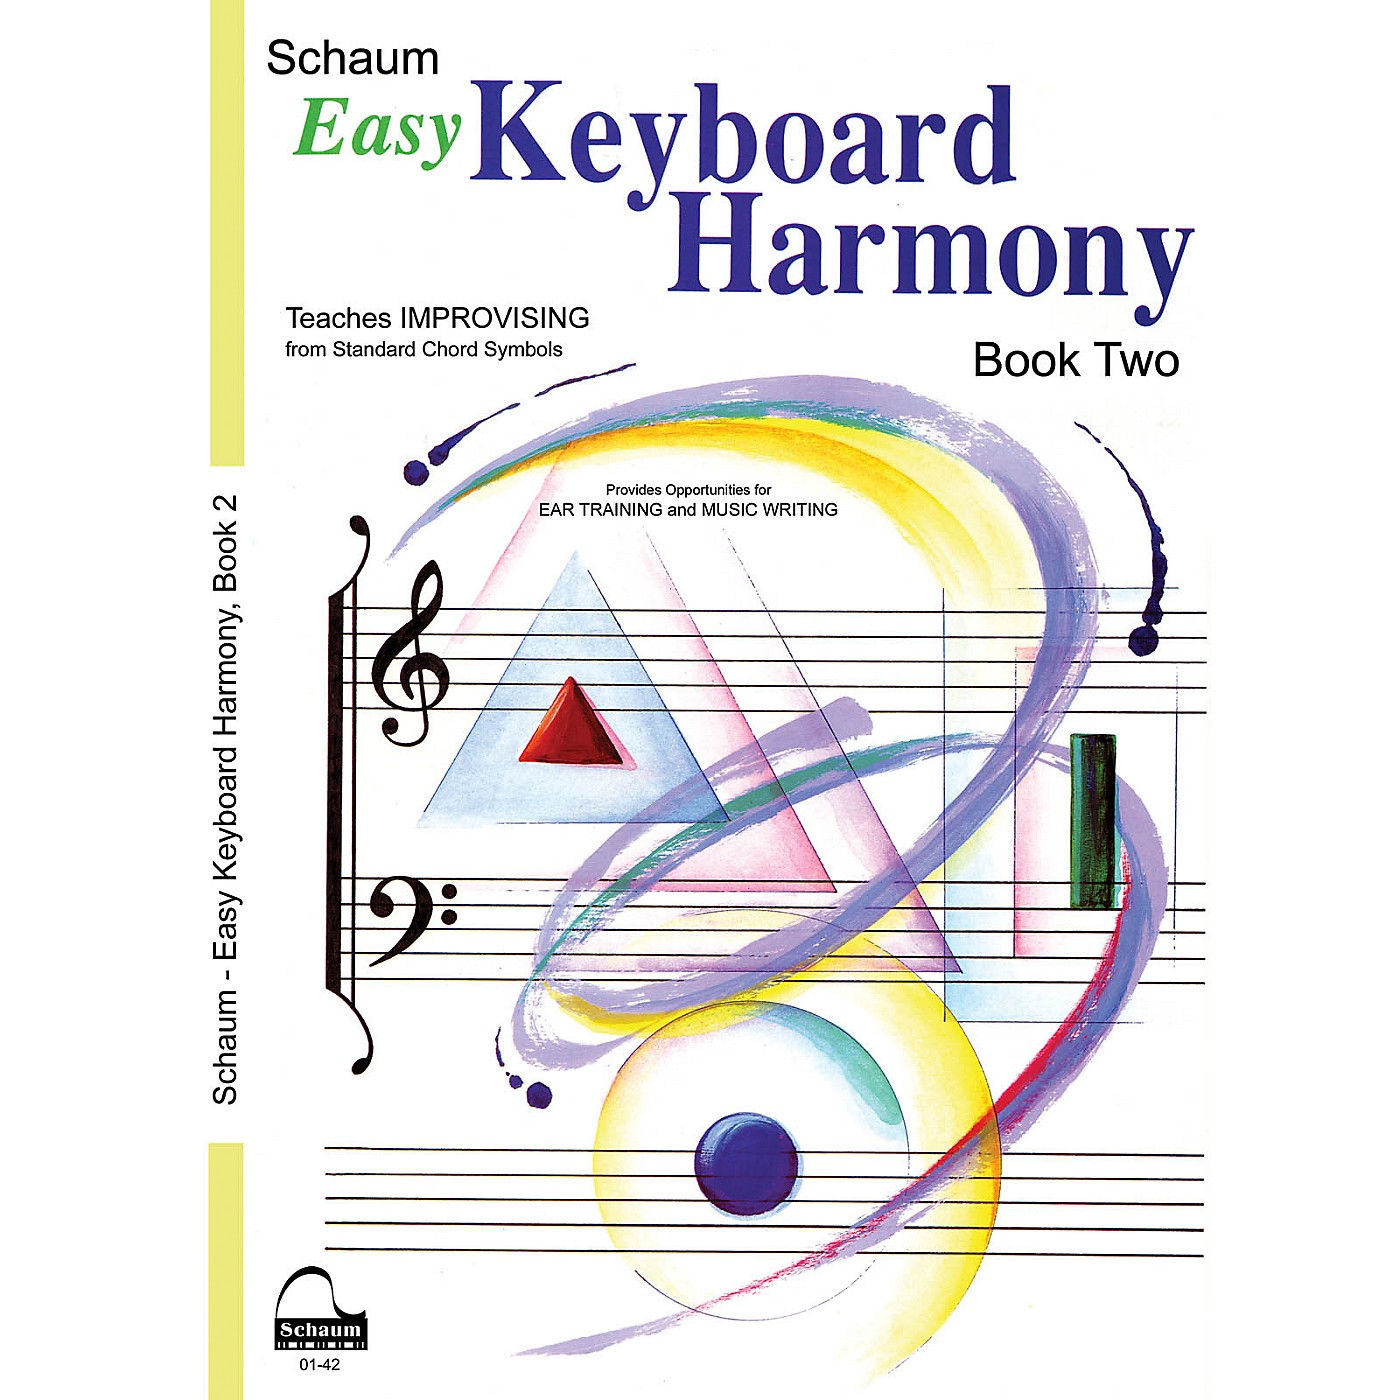 SCHAUM Easy Keyboard Harmony Educational Piano Book by Wesley Schaum (Level Early Inter) thumbnail